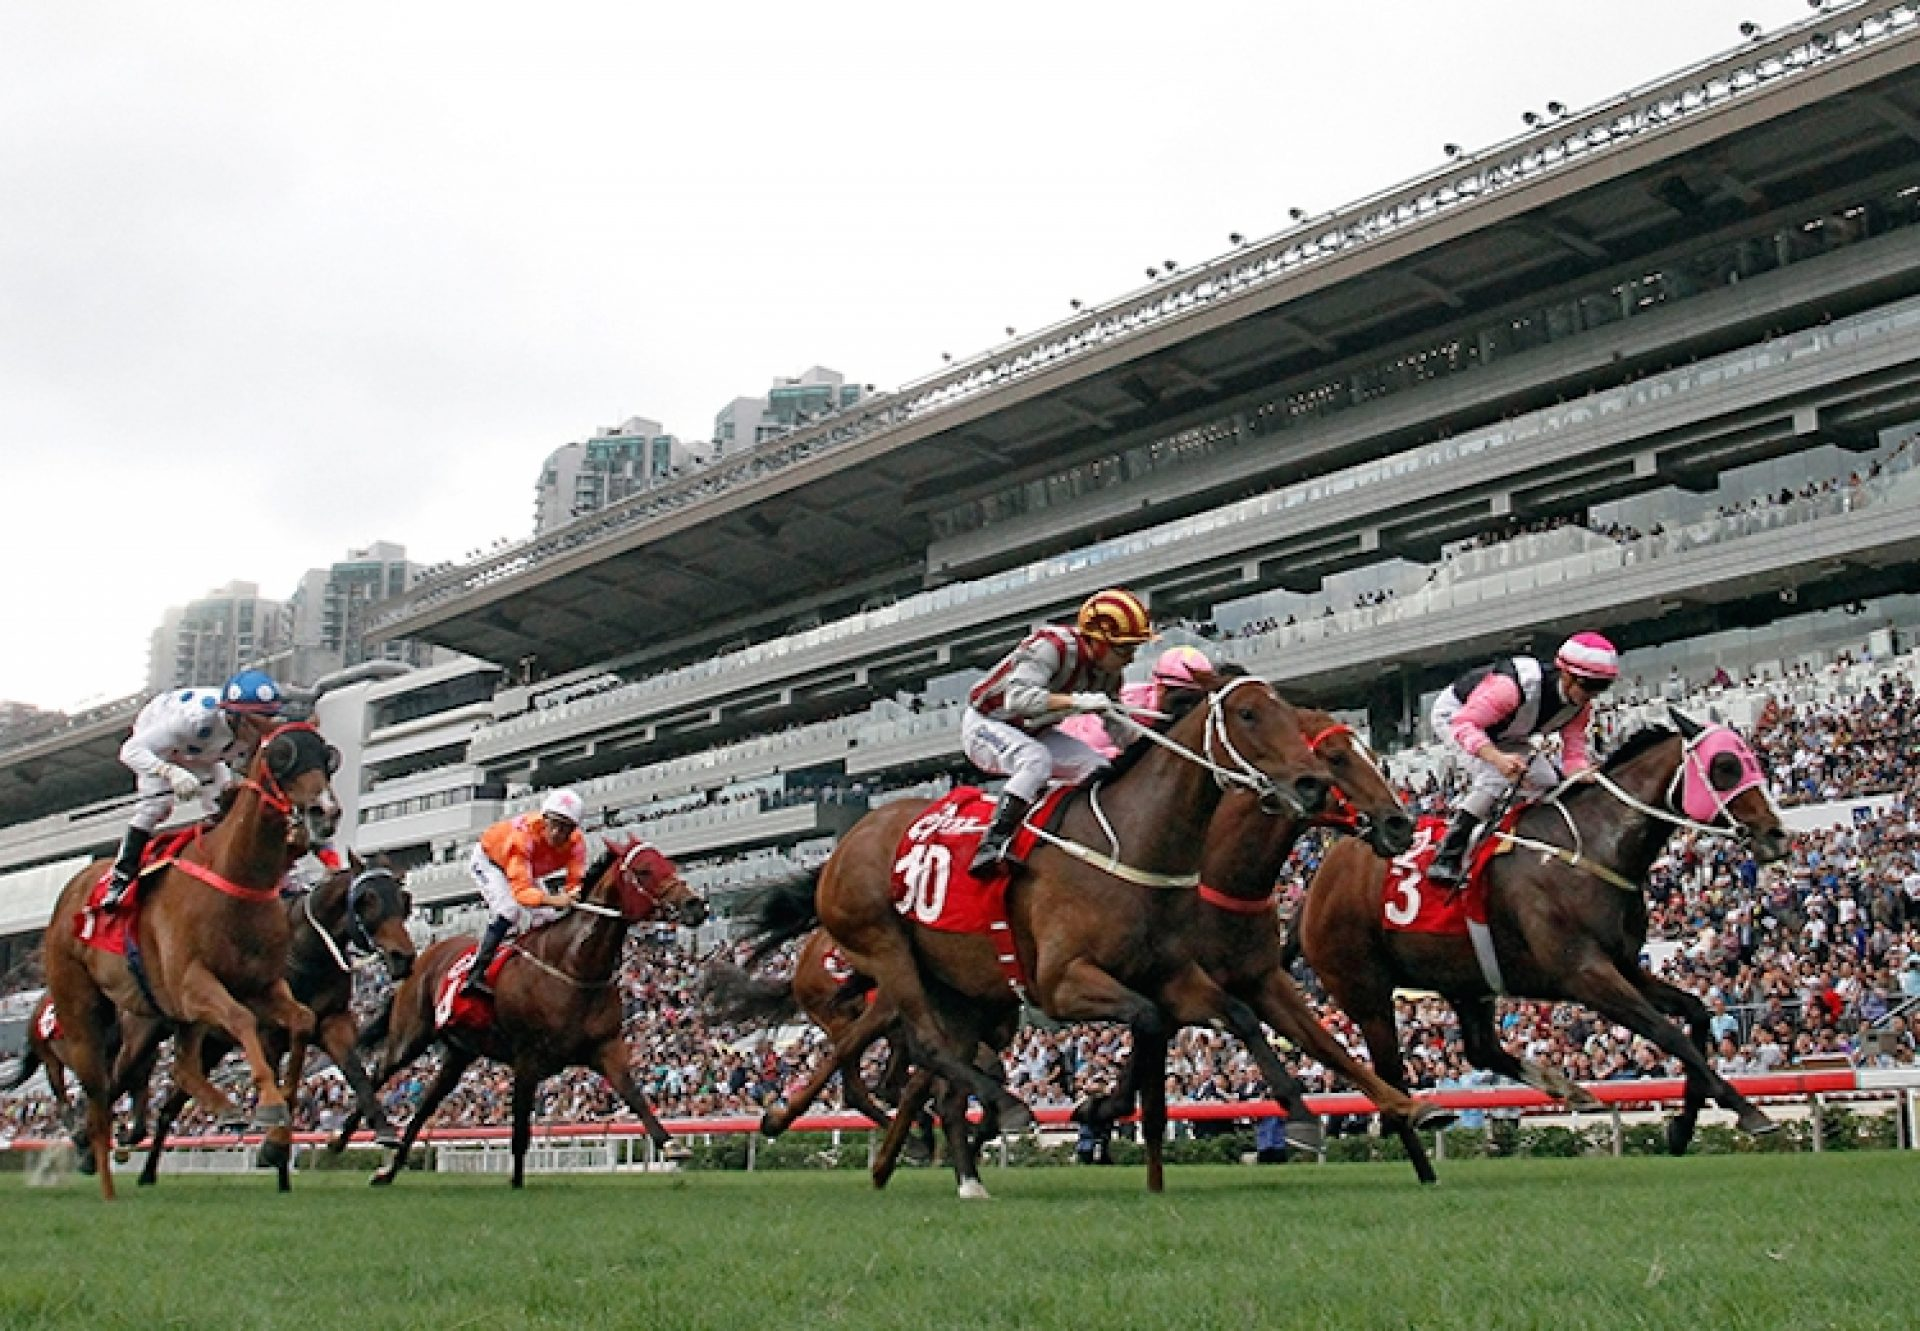 Beauty Only (Holy Roman Emperor) winning the G2 BOCHK Wealth Management Jockey Club Mile at Sha Tin